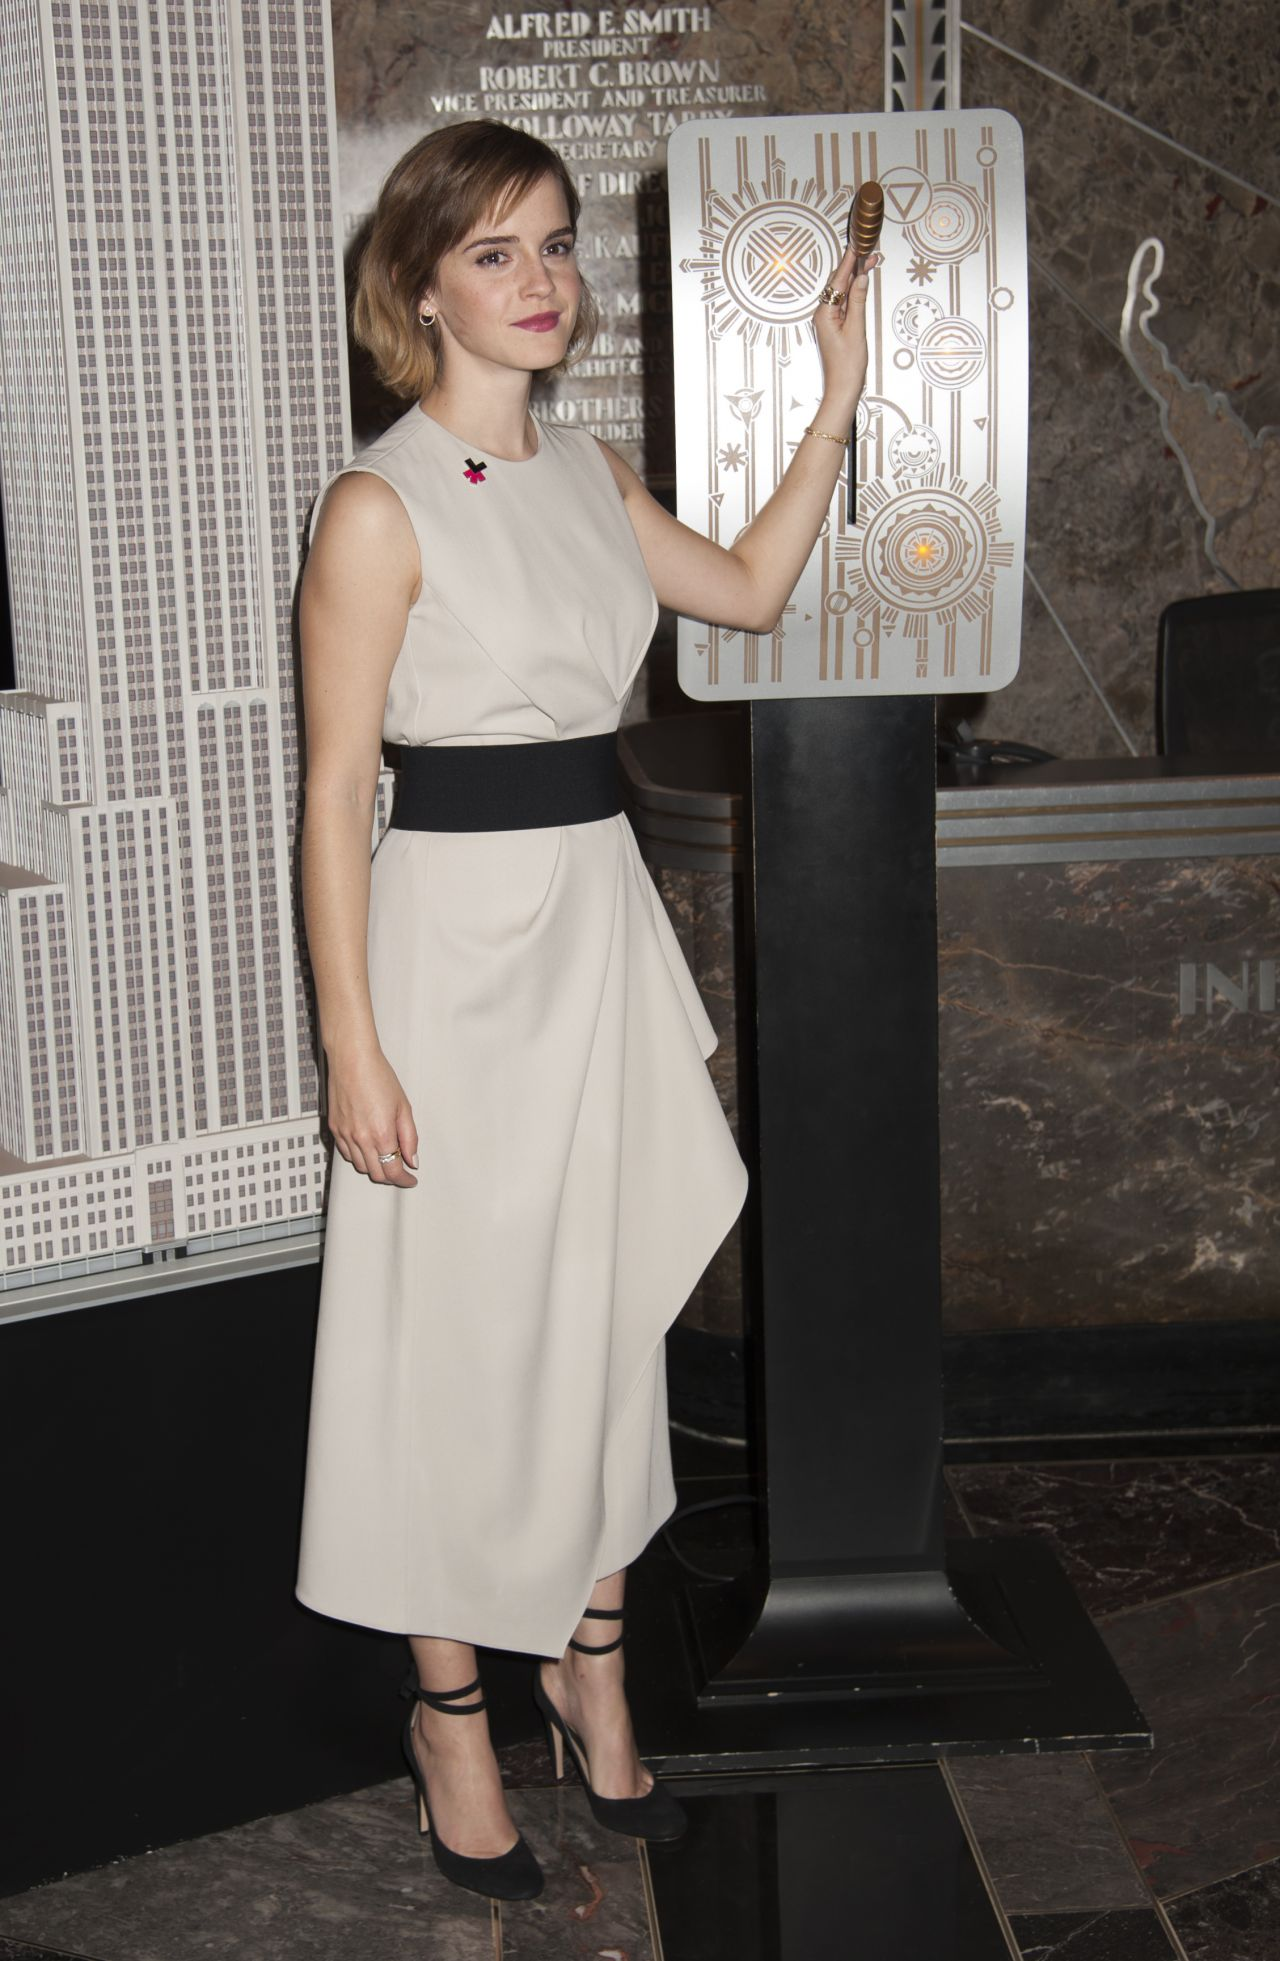 emma-watson-lights-the-empire-state-building-for-international-women-s-day-in-nyc-march-8-2016-1